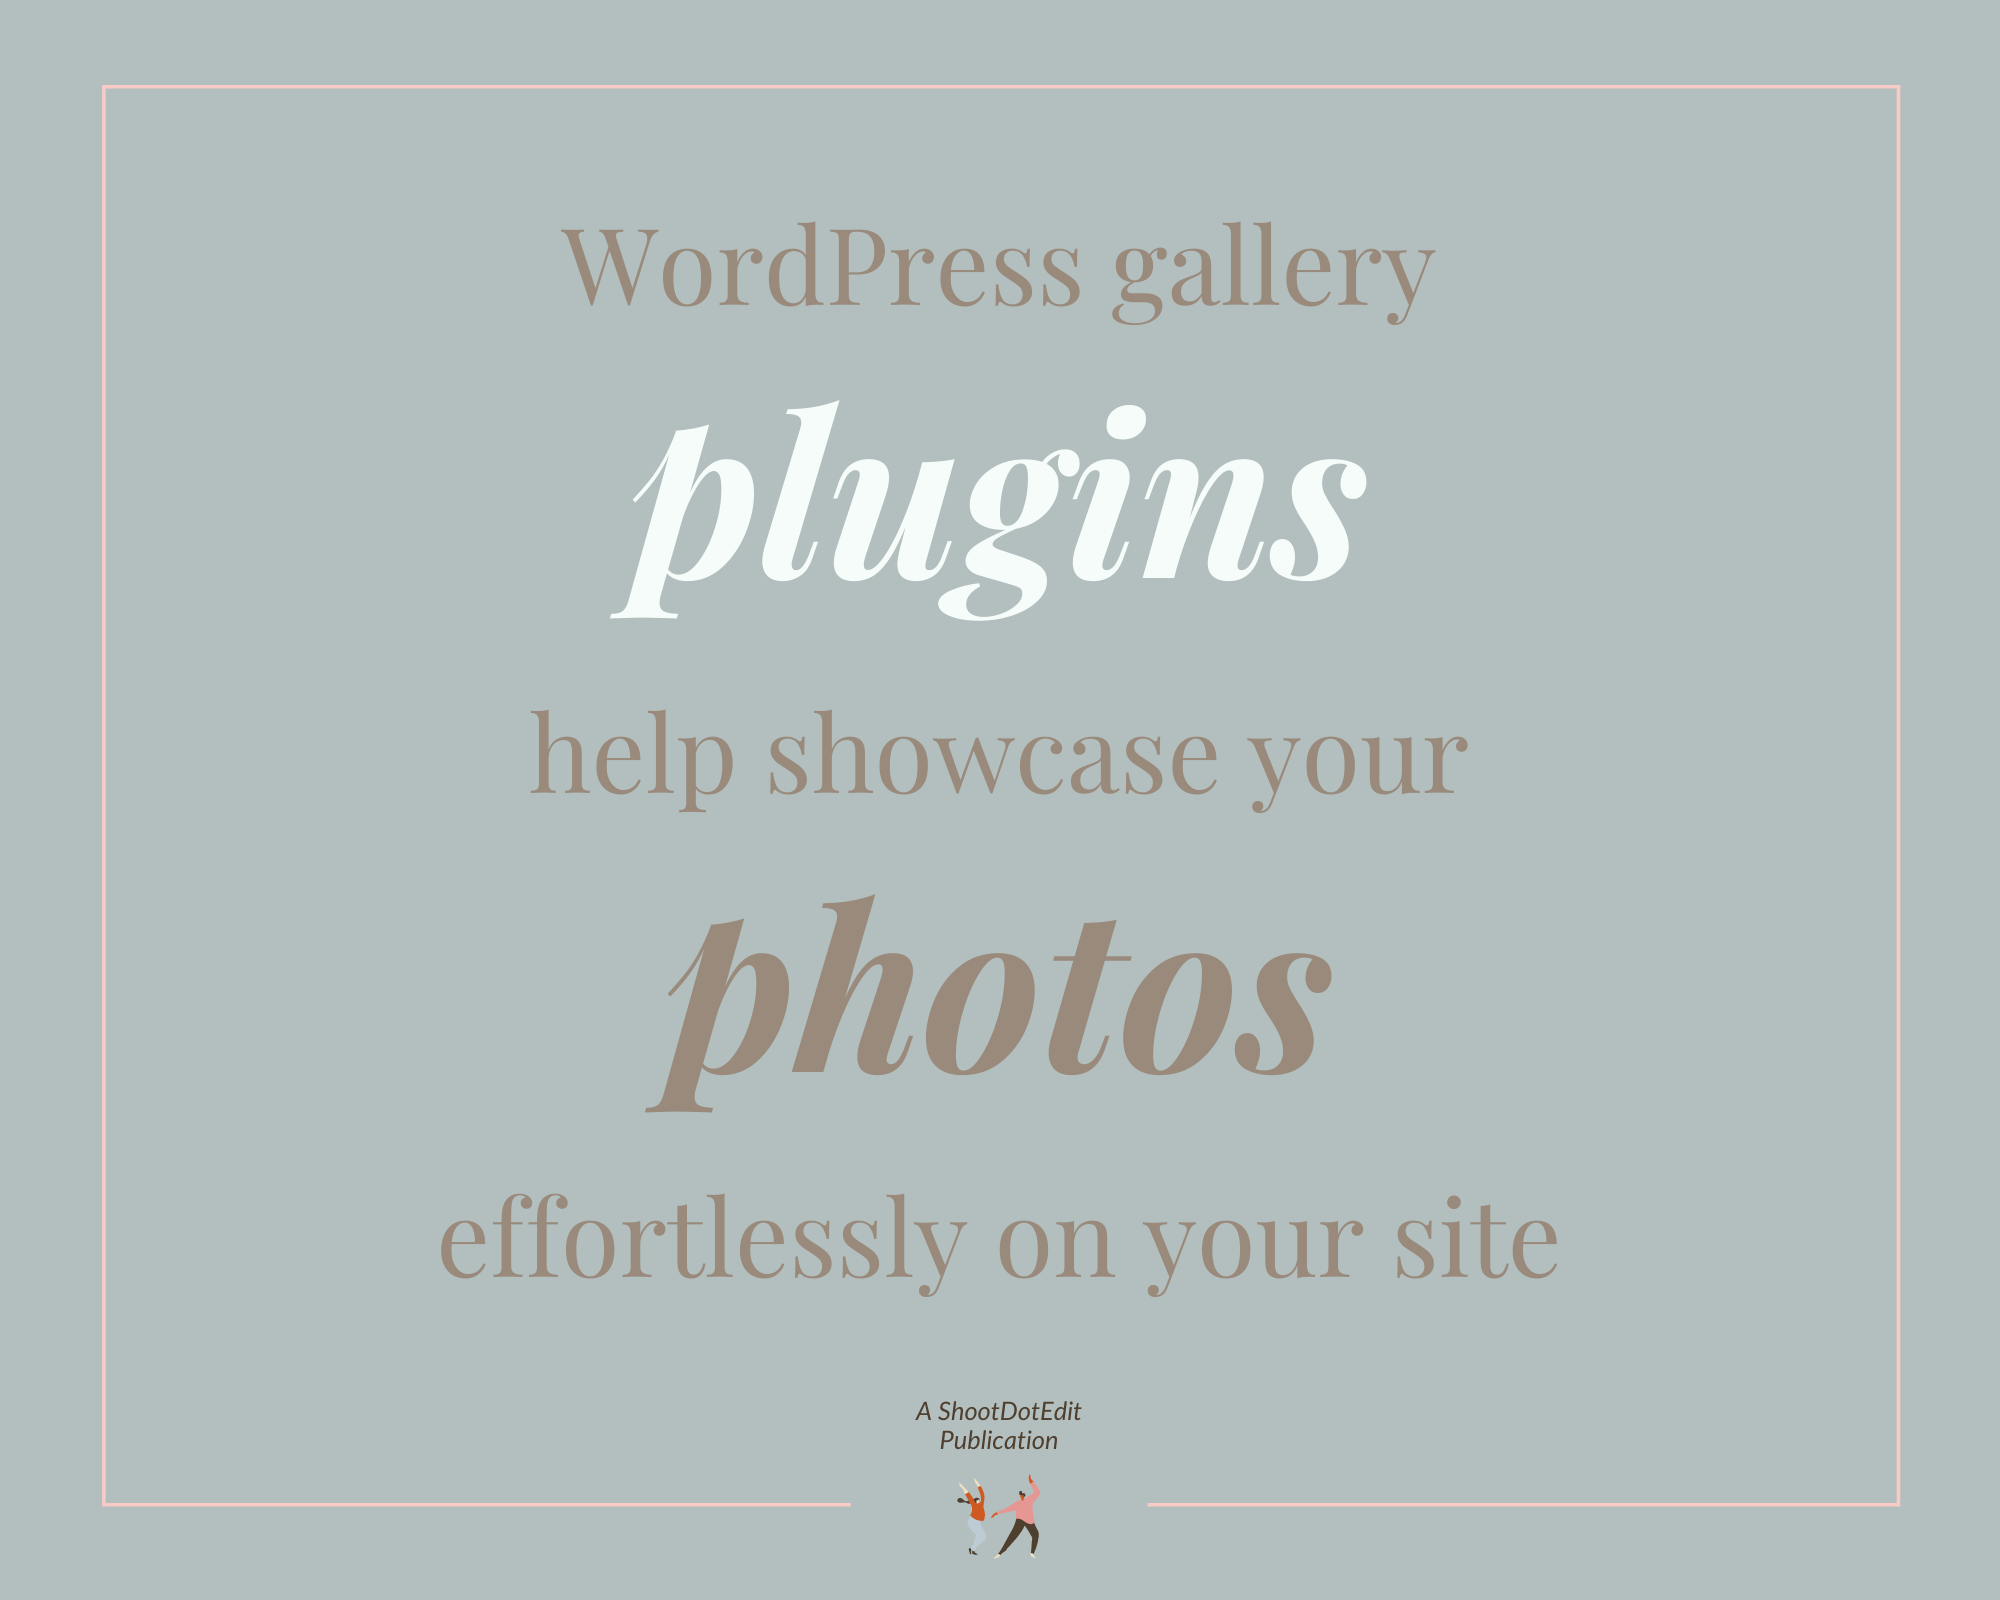 WordPress gallery plugins helps showcase your photos effortlessly on your site